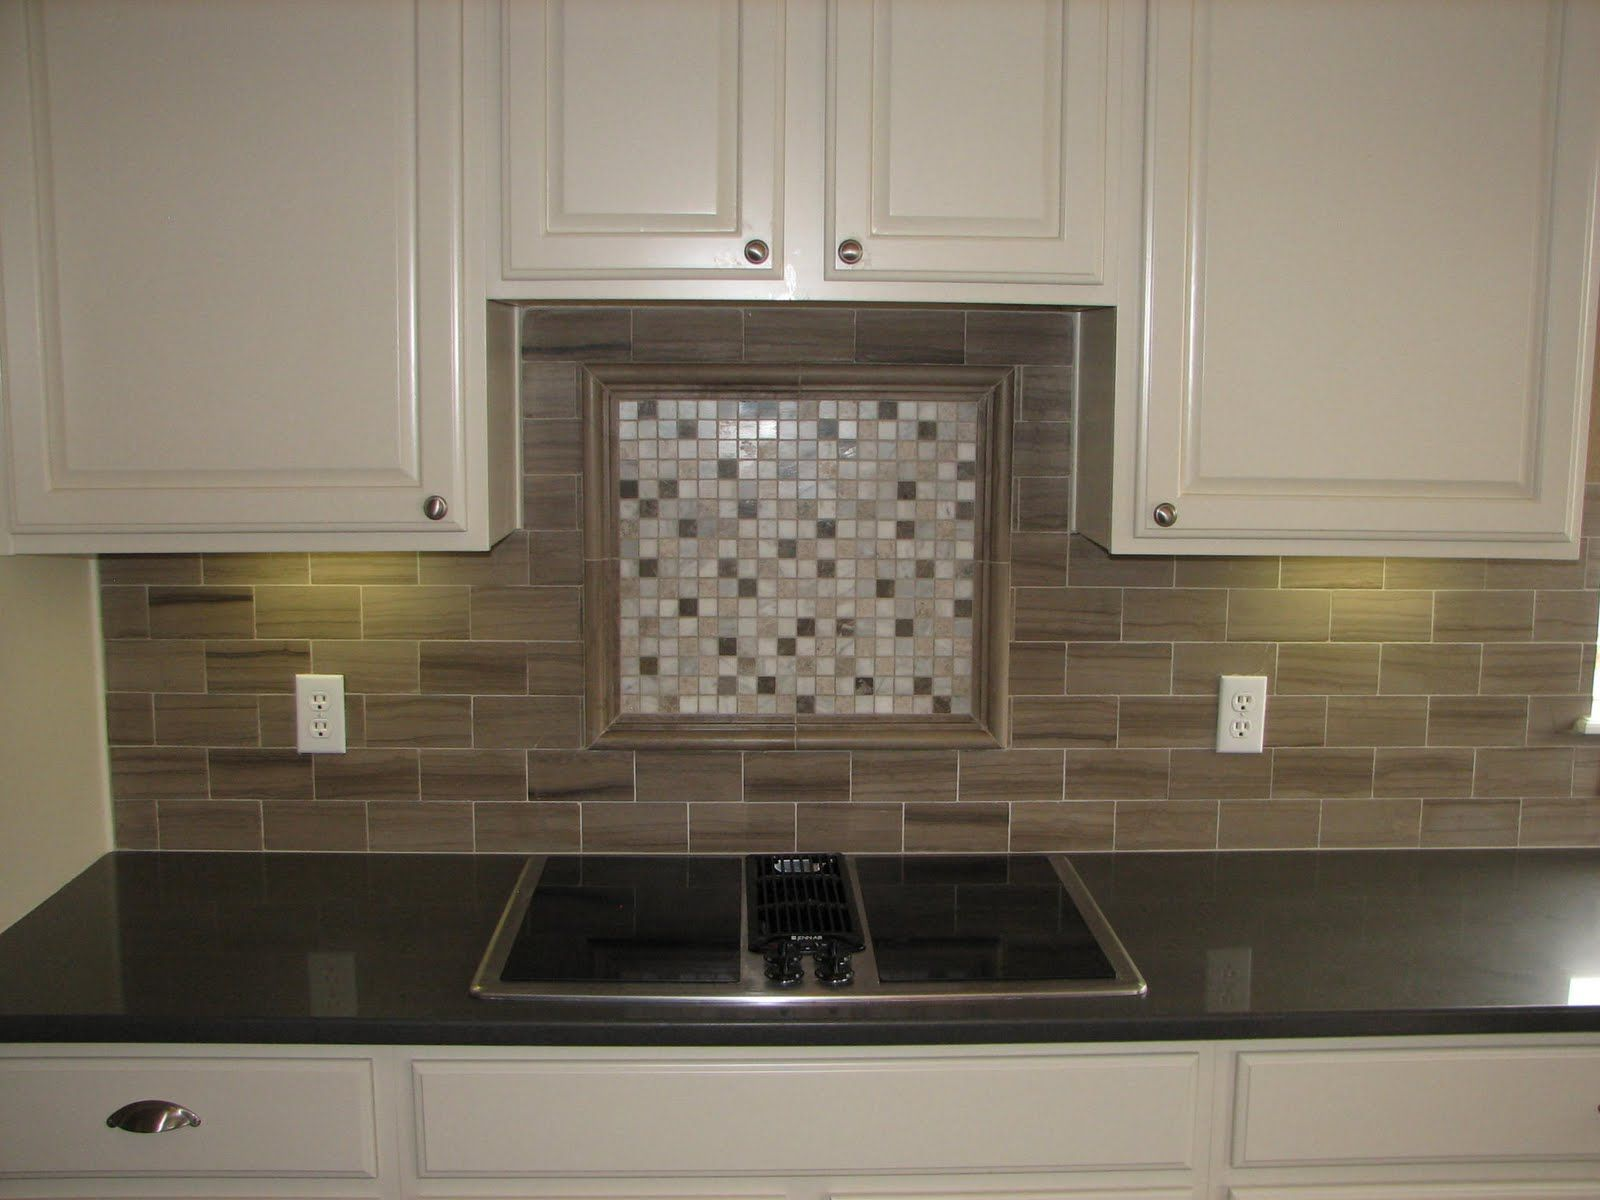 Tile Backsplash With Black Cuntertop Ideas Tile Design Backsplash Photos Backsplash Design: tile backsplash ideas for kitchen